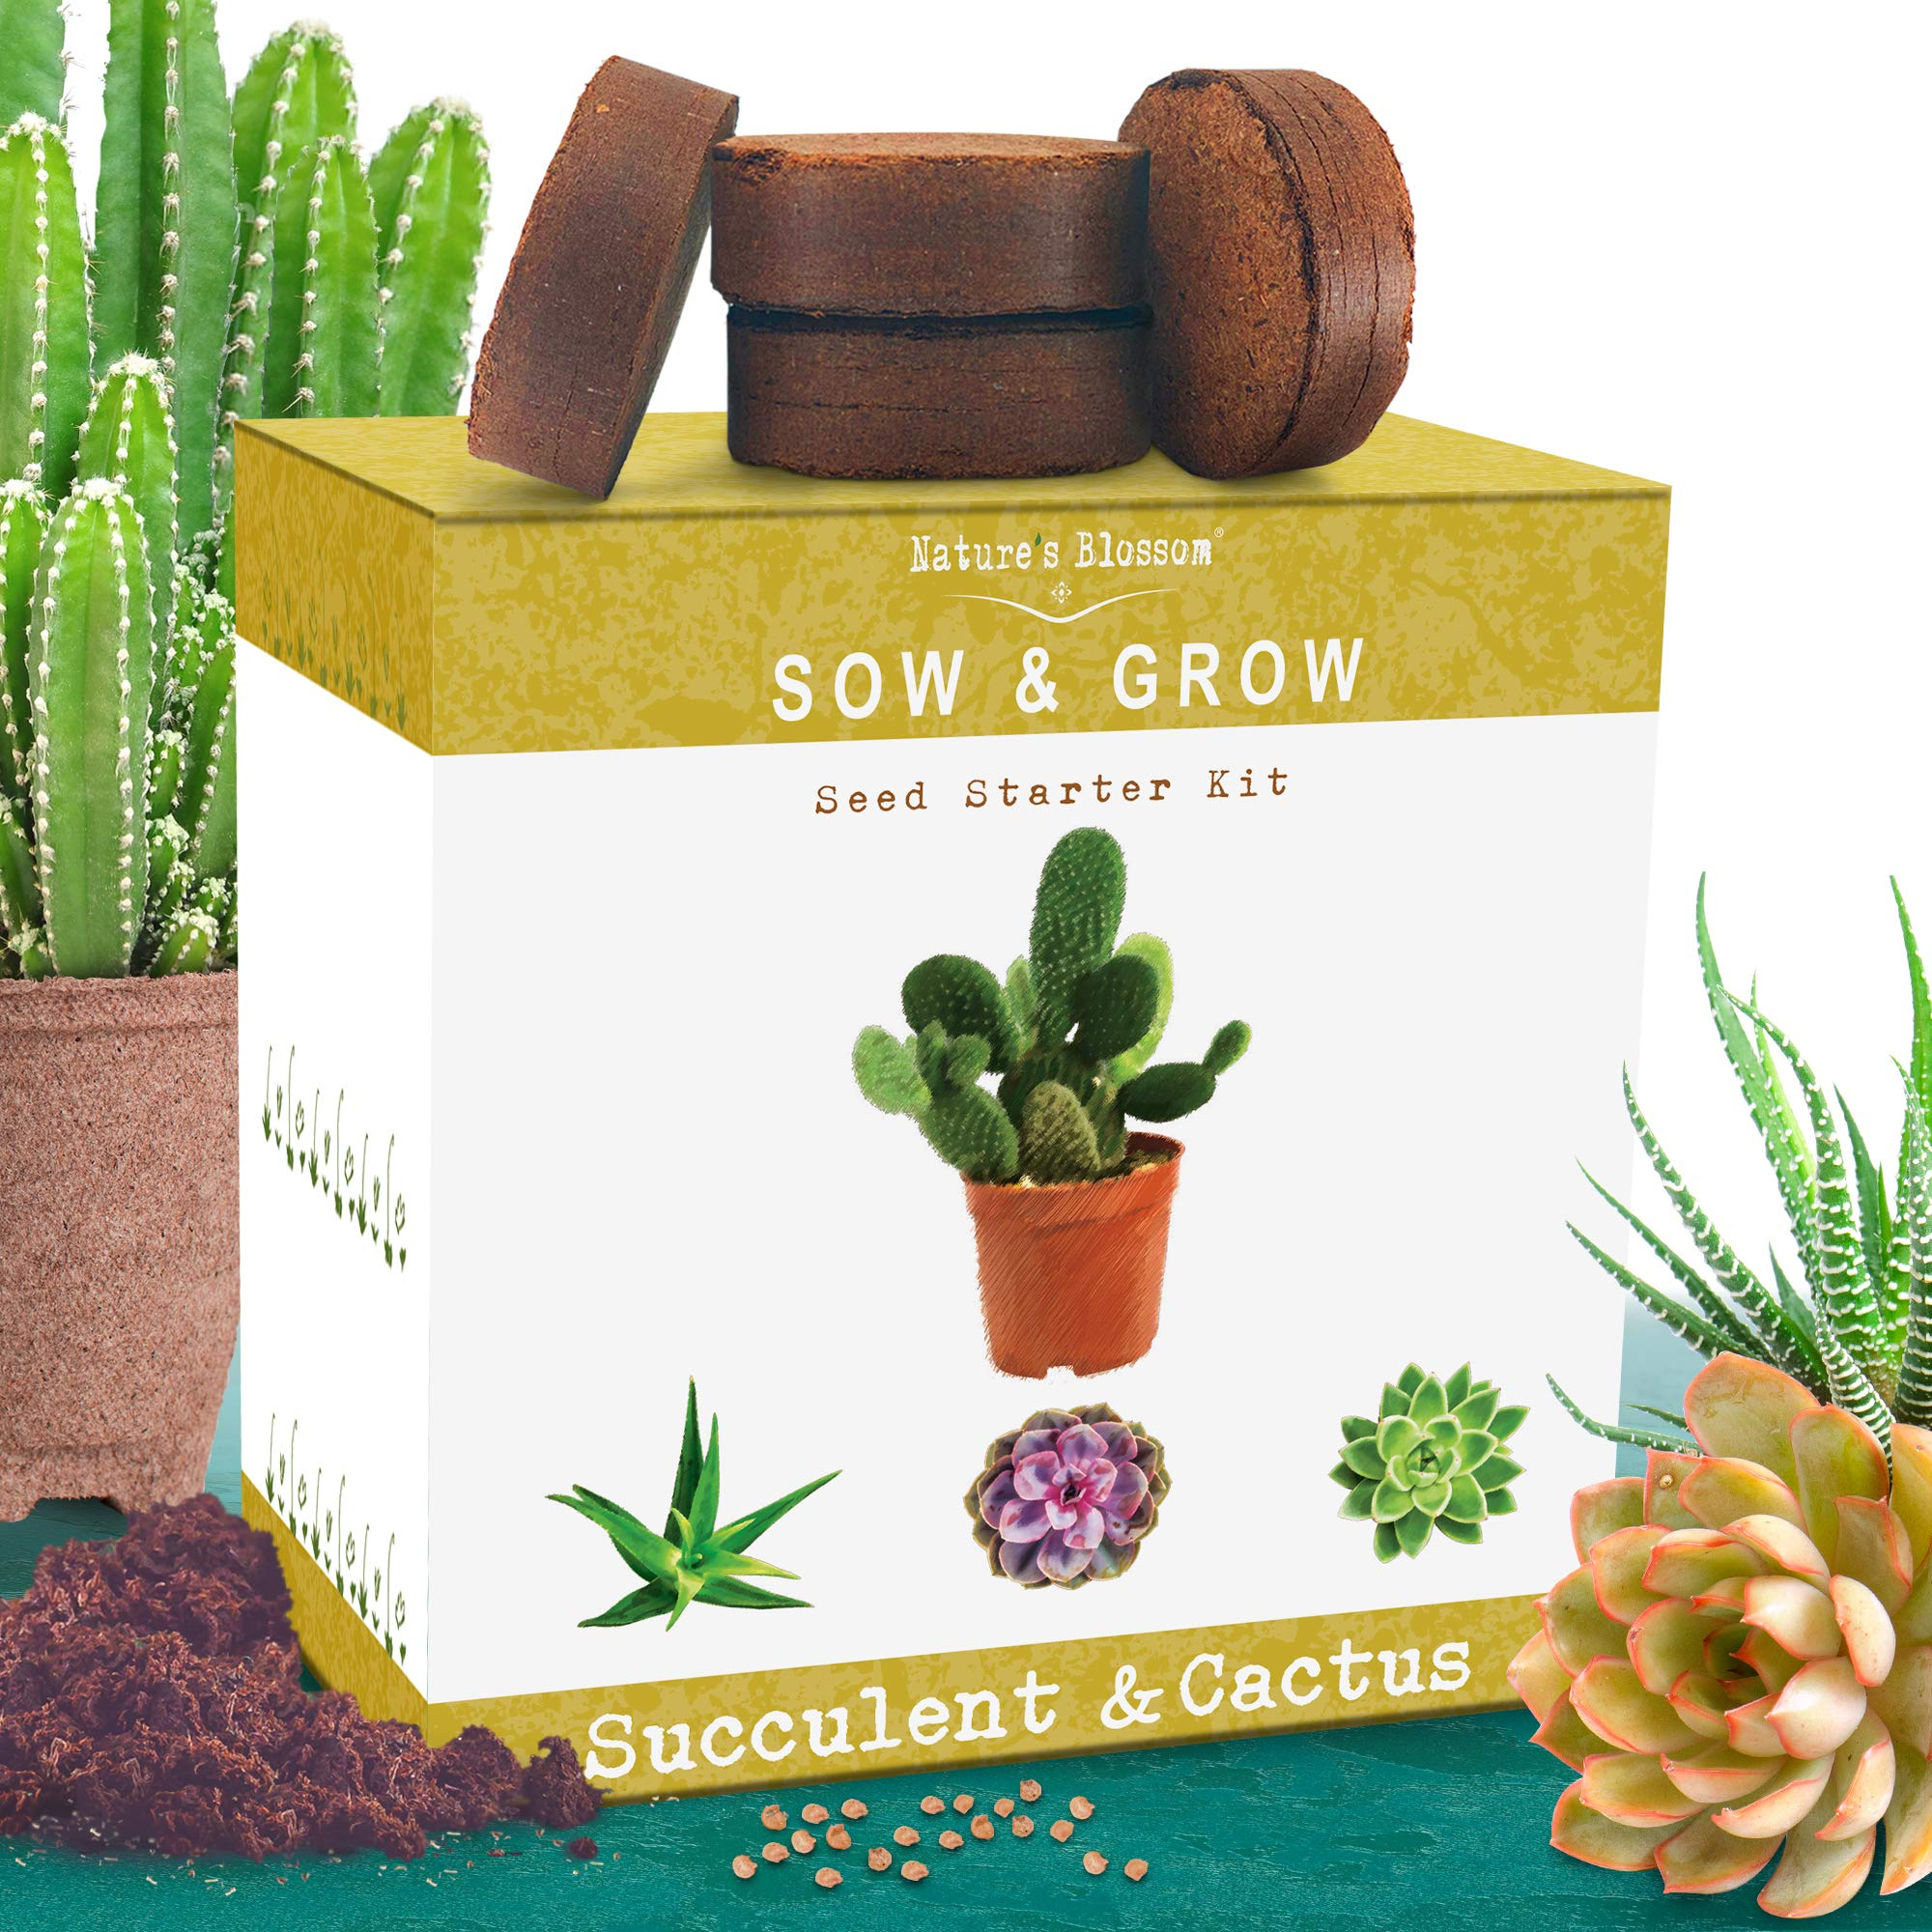 Nature's Blossom Succulent and Cactus Growing Kit. A Complete Garden Starter Set To Grow Your Own Succulents and Cacti Plants From Organic Seeds. Indoor Gardening Guide Included by Nature's Blossom